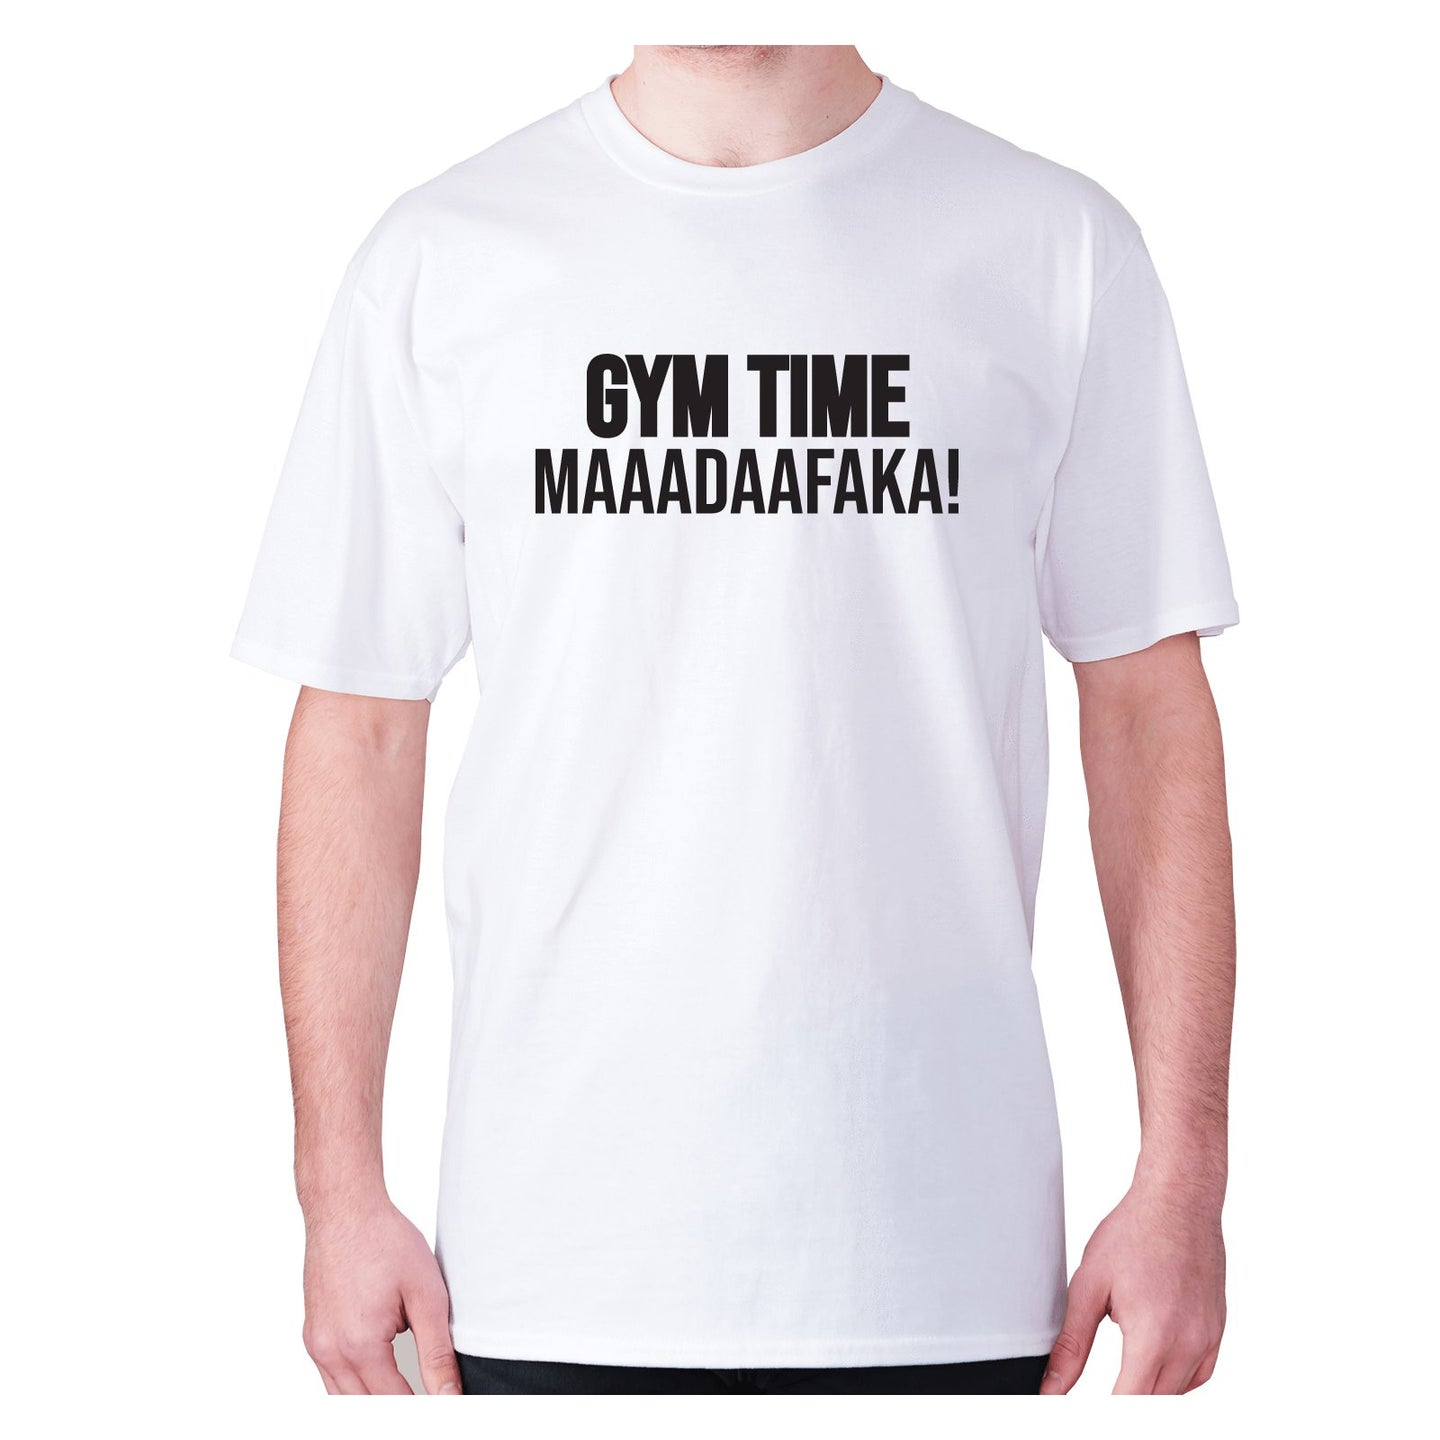 Gym time maaadaafaka! - men's premium t-shirt - Graphic Gear